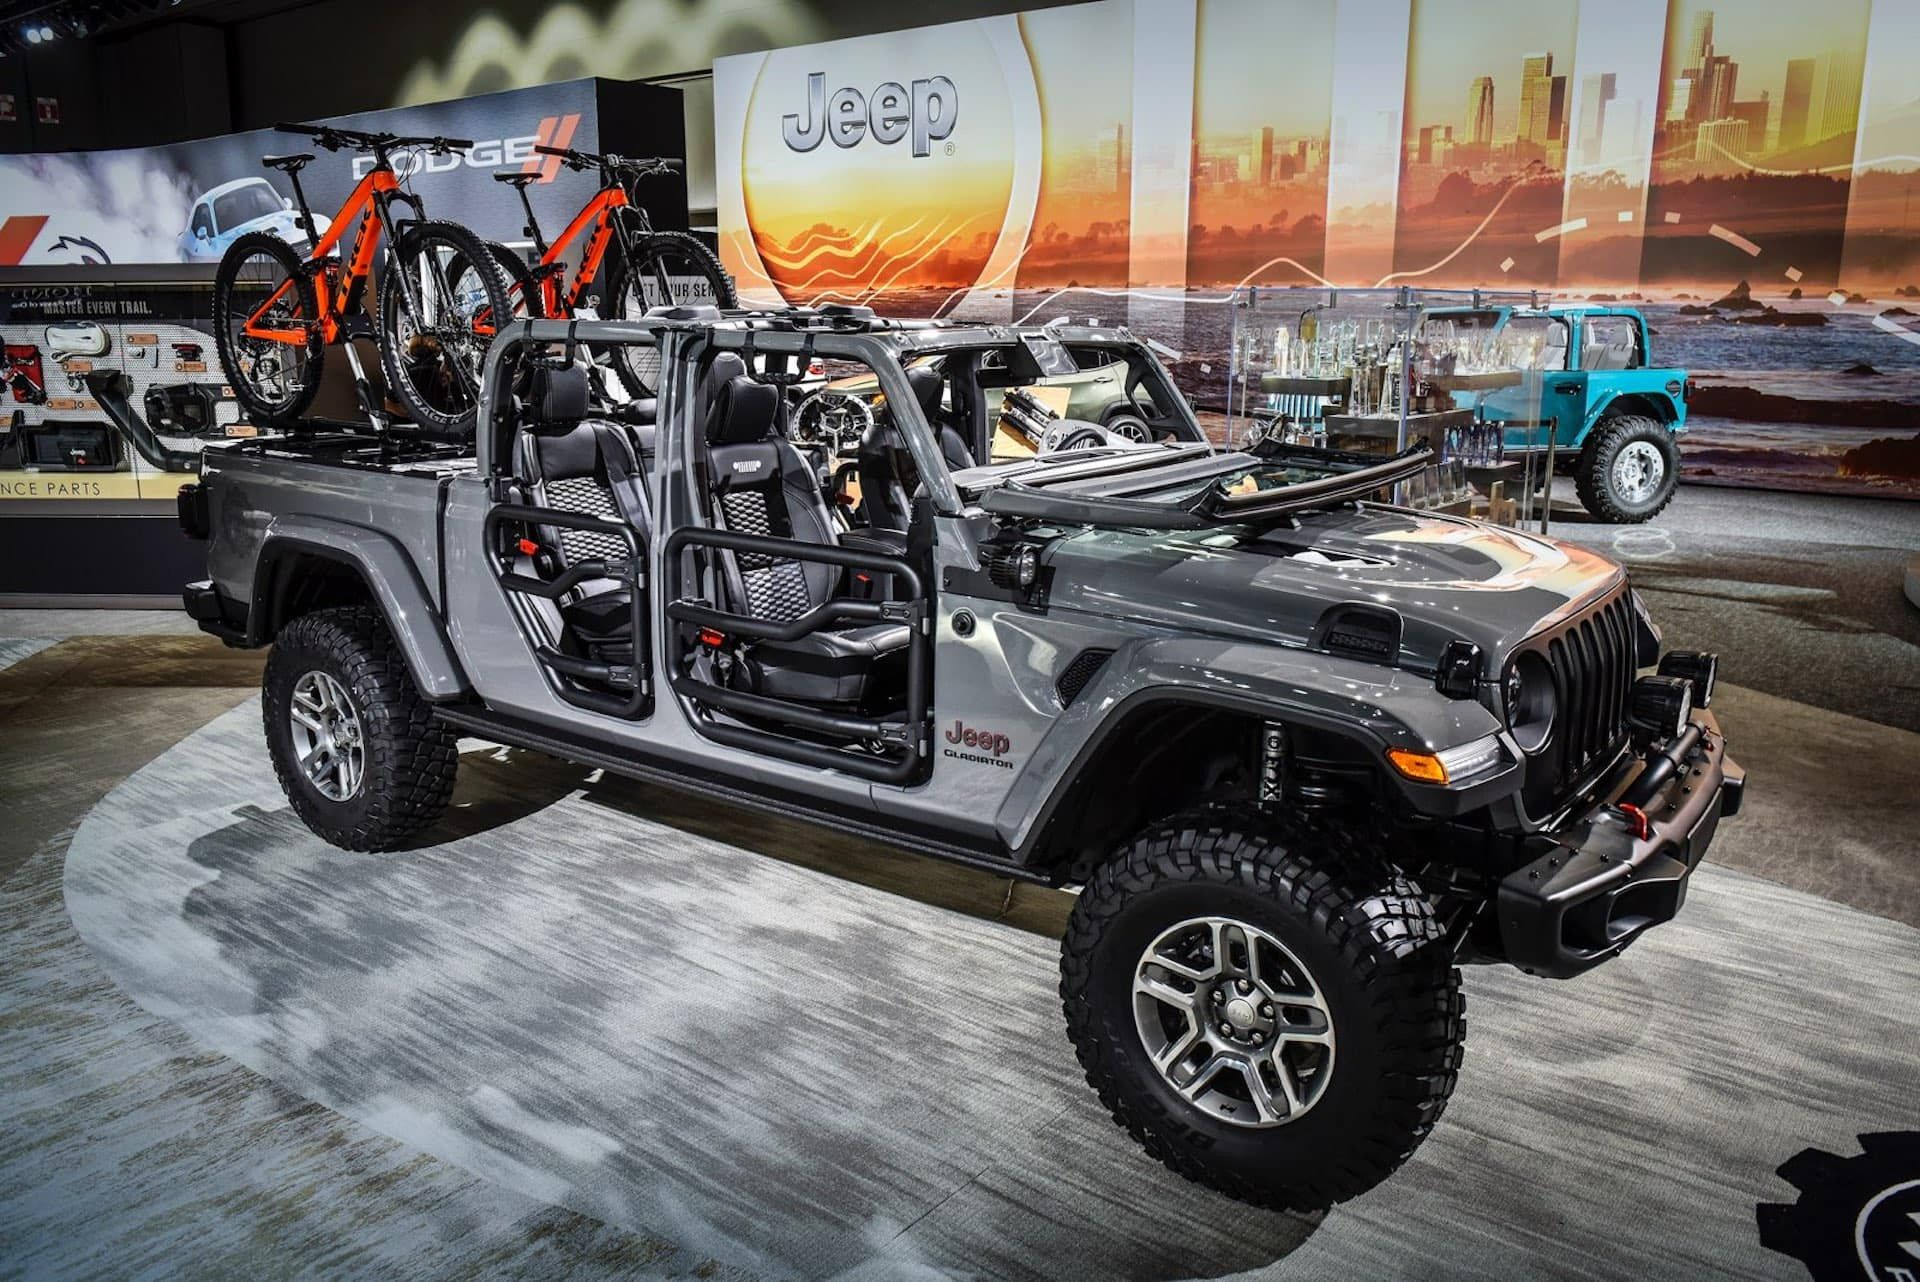 2020 Jeep Gladiator Availability Date Engine Check More At Https Blog Dailymaza Me 2020 Jeep Gladiator Availability Date Engine Di 2020